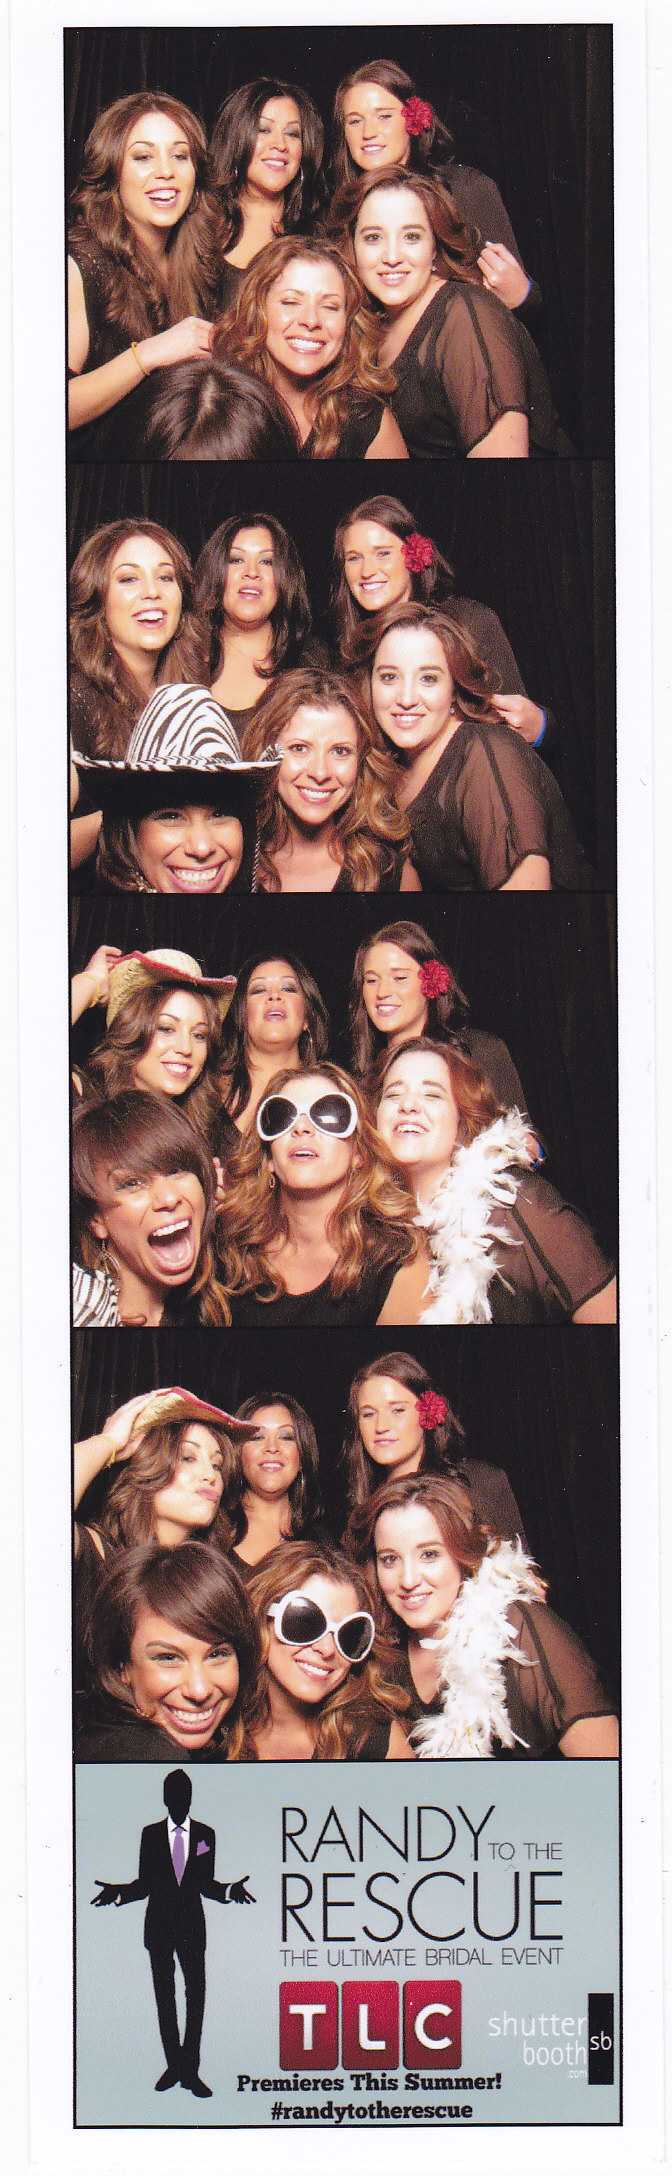 Amelia C & Co takes over ShutterBooth at Randy to the